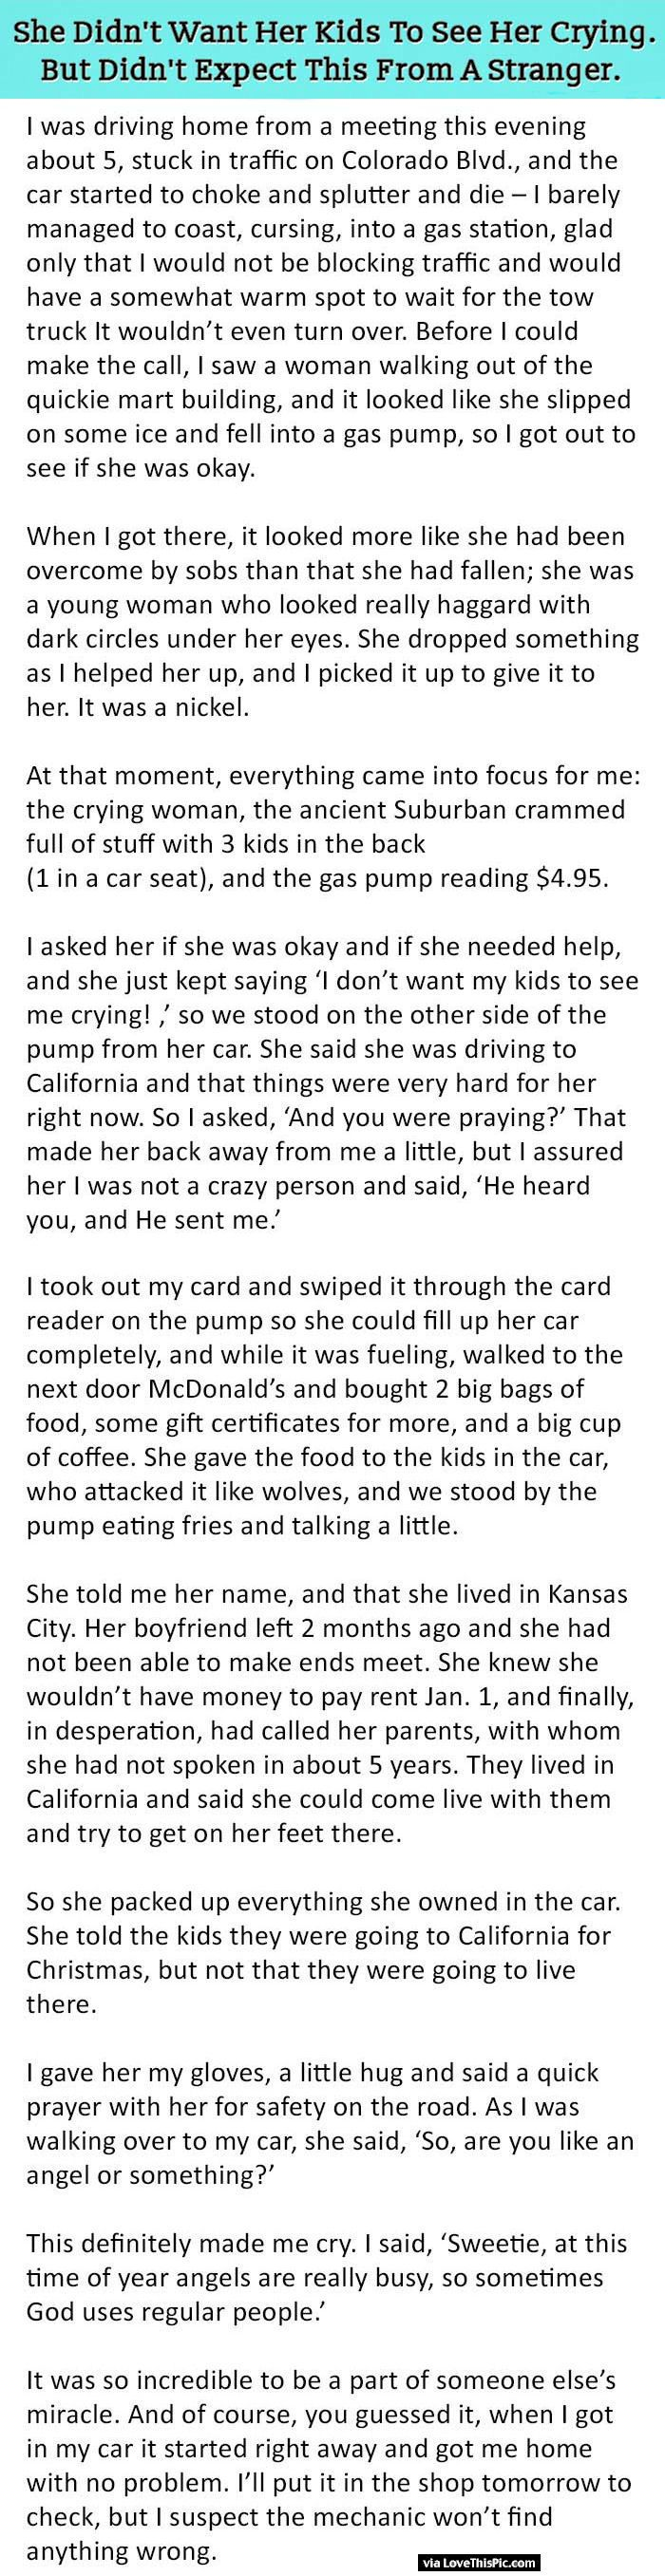 She did not want her kids to see her crying but never expected she did not want her kids to see her crying but never expected this from a stranger moms kids people mom parents amazing story children parenting robcynllc Images